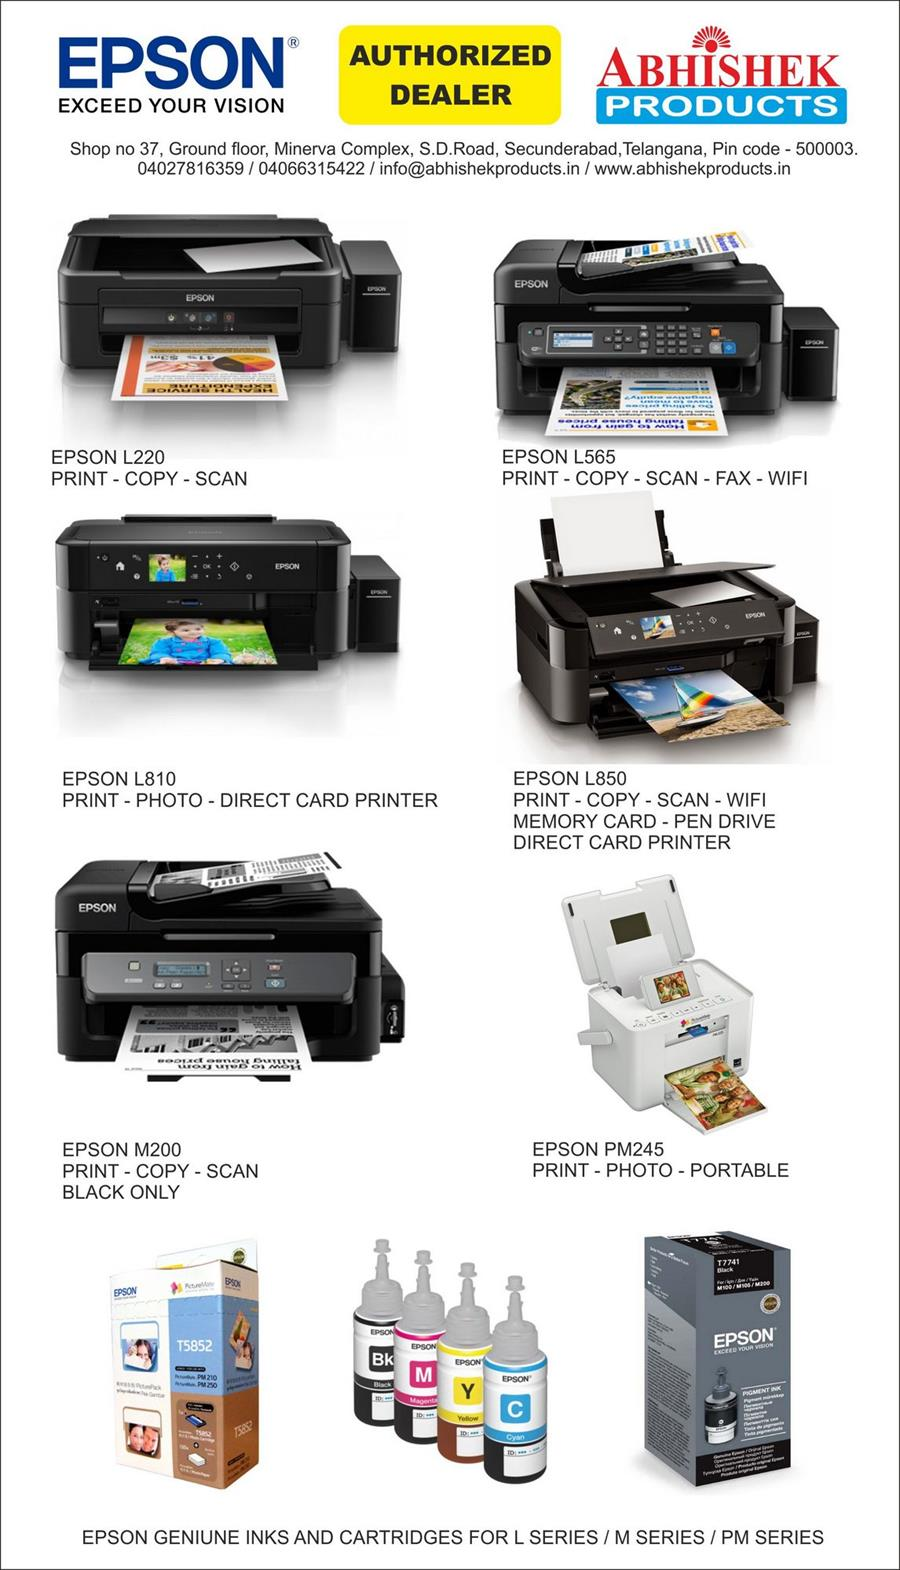 EPSON EXCEED YOUR VISION AUTHORIZED DEALER ABHISHEK PRODUCTS Shop no 37, Ground floor, Minerva Complex, S.D.Road, Secunderabad,Telangana, Pin code - 500003. 04027816359 / 04066315422 / info@abhishekproducts.in / www.abhishekproducts.in EPSON L220 PRINT - COPY - SCAN EPSON L810 PRINT - PHOTO - DIRECT CARD PRINTER EPSON M200 PRINT - COPY - SCAN BLACK ONLY EPSON L565 PRINT - COPY - SCAN - FAX - WIFI EPSON L850 PRINT - COPY - SCAN - WIFI MEMORY CARD - PEN DRIVE DIRECT CARD PRINTER EPSON PM245 PRINT - PHOTO - PORTABLE EPSON GENIUNE INKS AND CARTRIDGES FOR L SERIES / M SERIES / PM SERIES